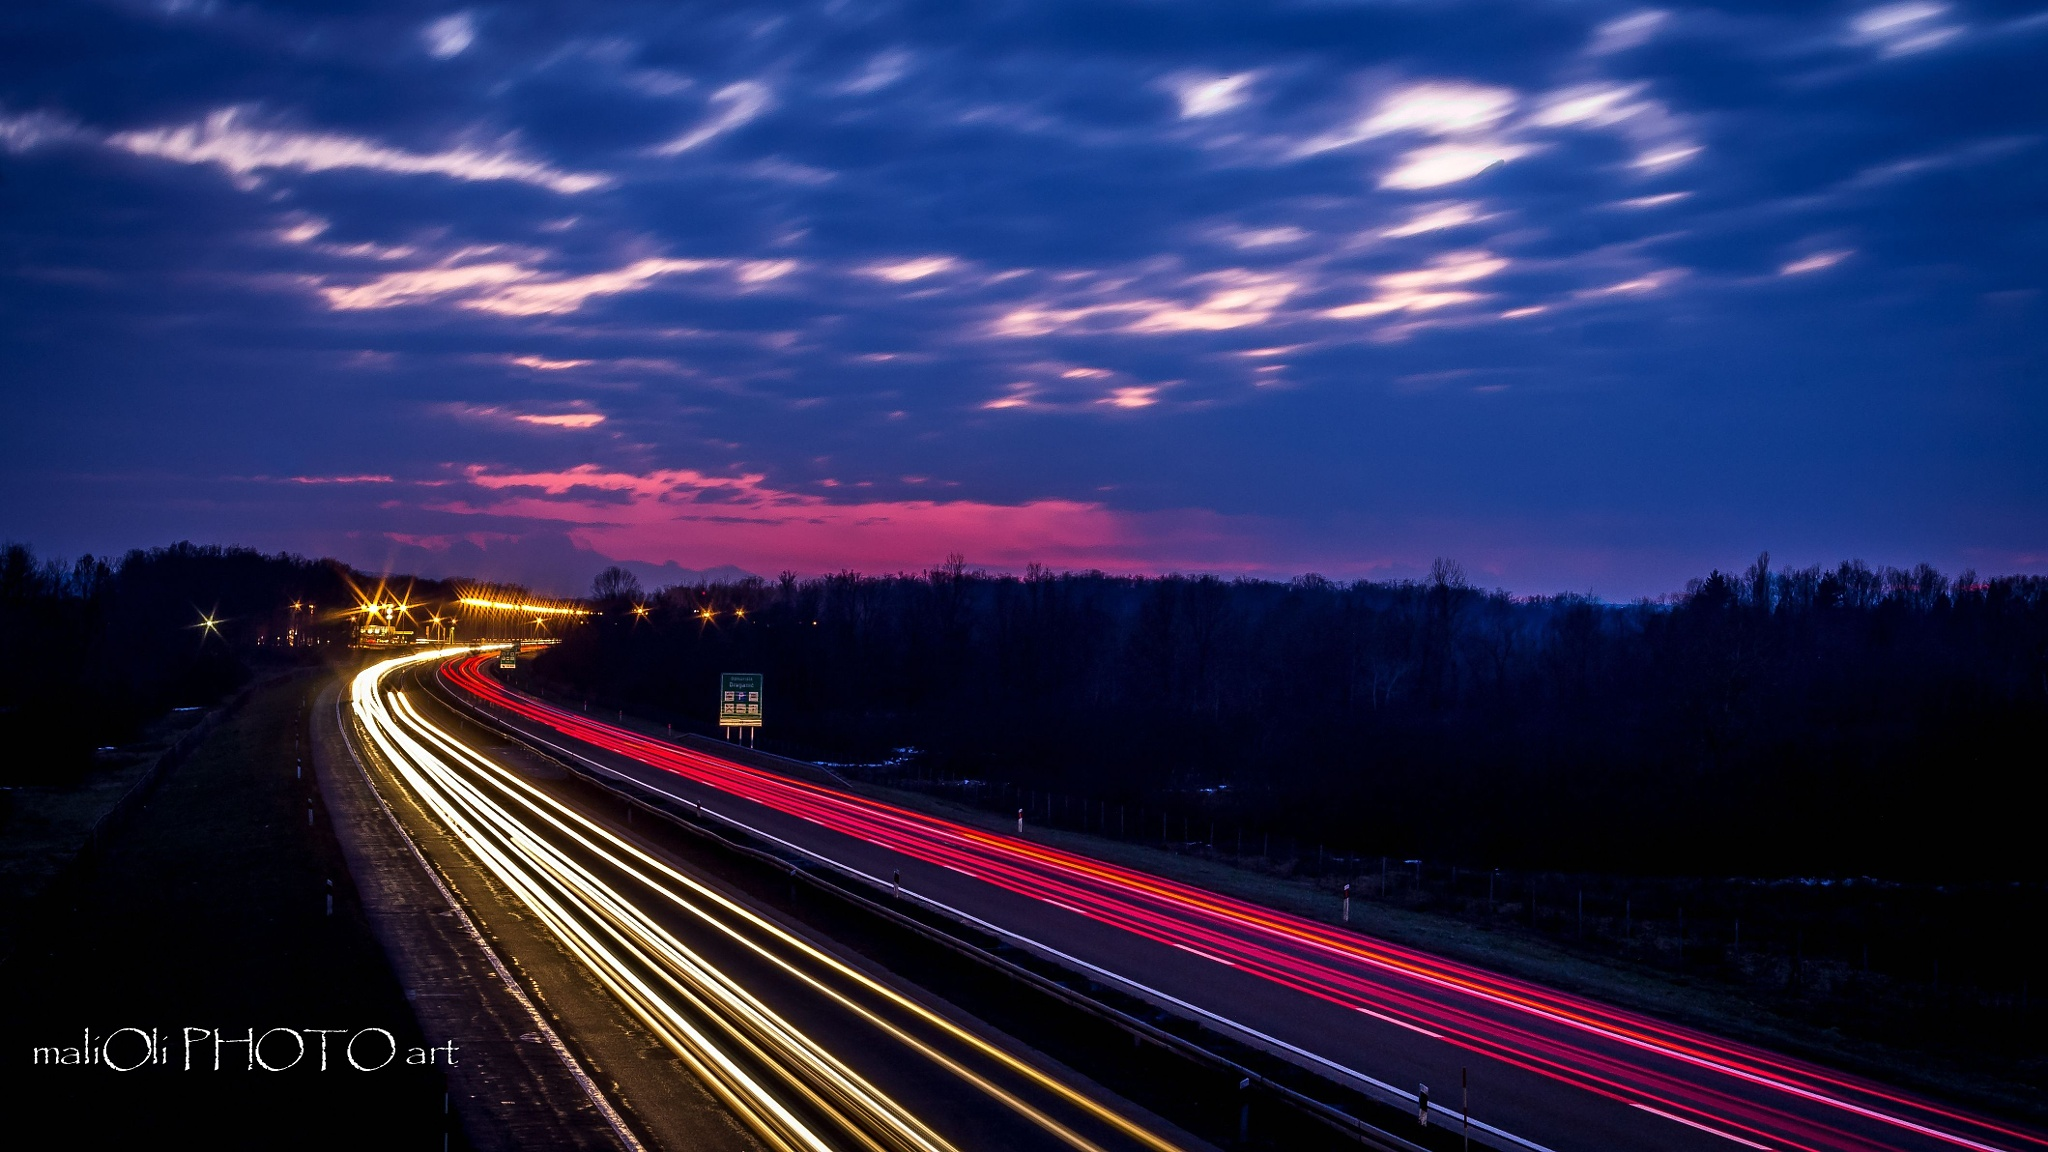 On the road in the twilight  by oliversvob